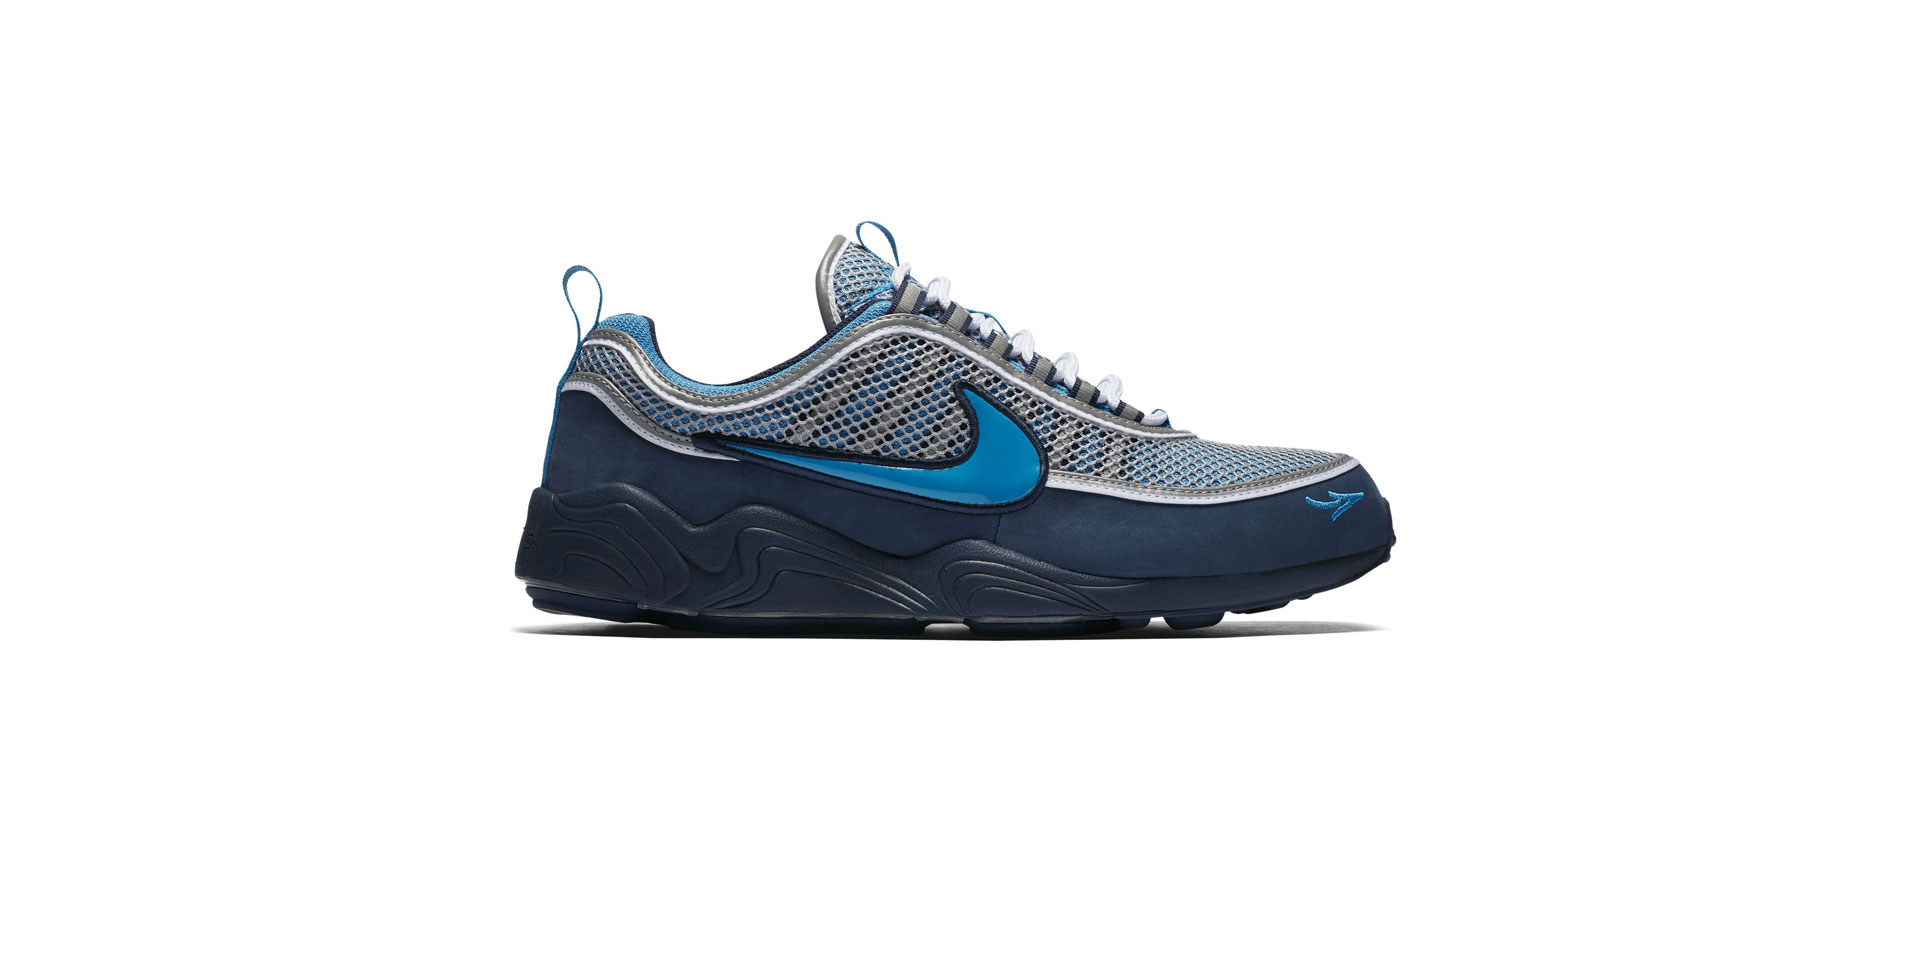 NIKE AIR ZOOM SPIRIDON '16 X STASH - HARBOUR BLUE/HERITAGE CYAN